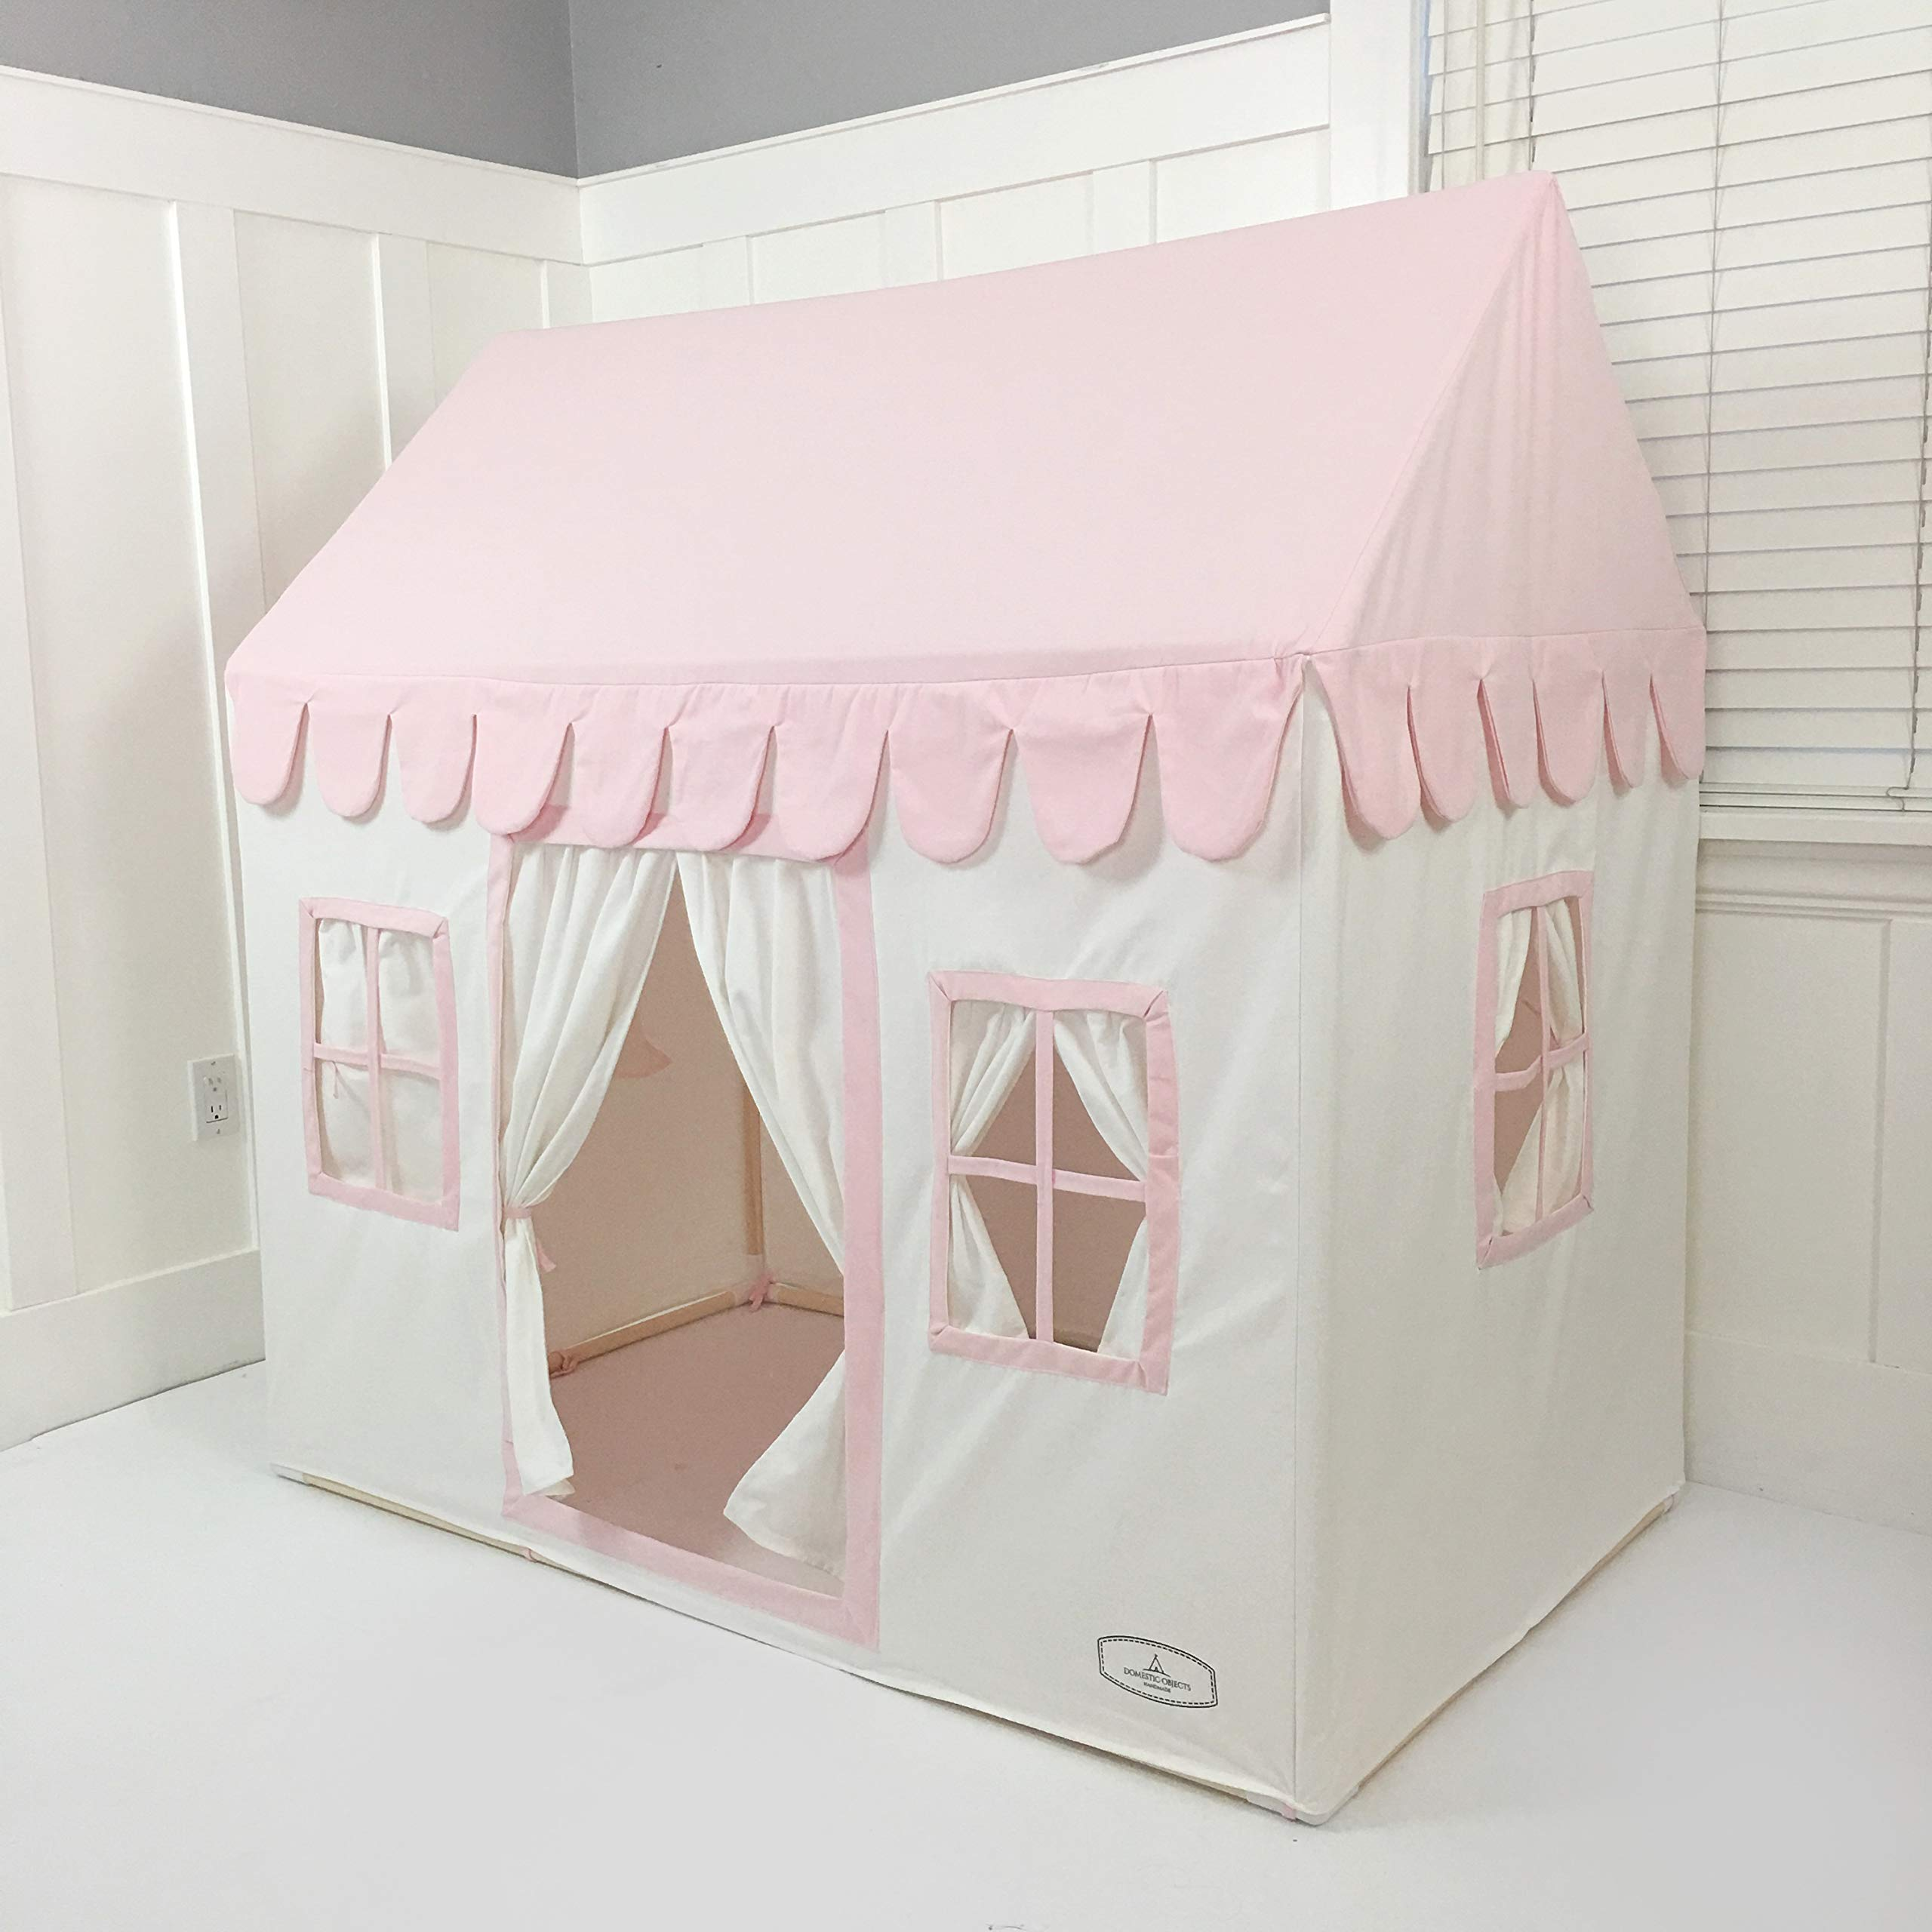 Domestic Objects Children's Playhouse. Handmade with 100% Cotton Premium Quality. Pink